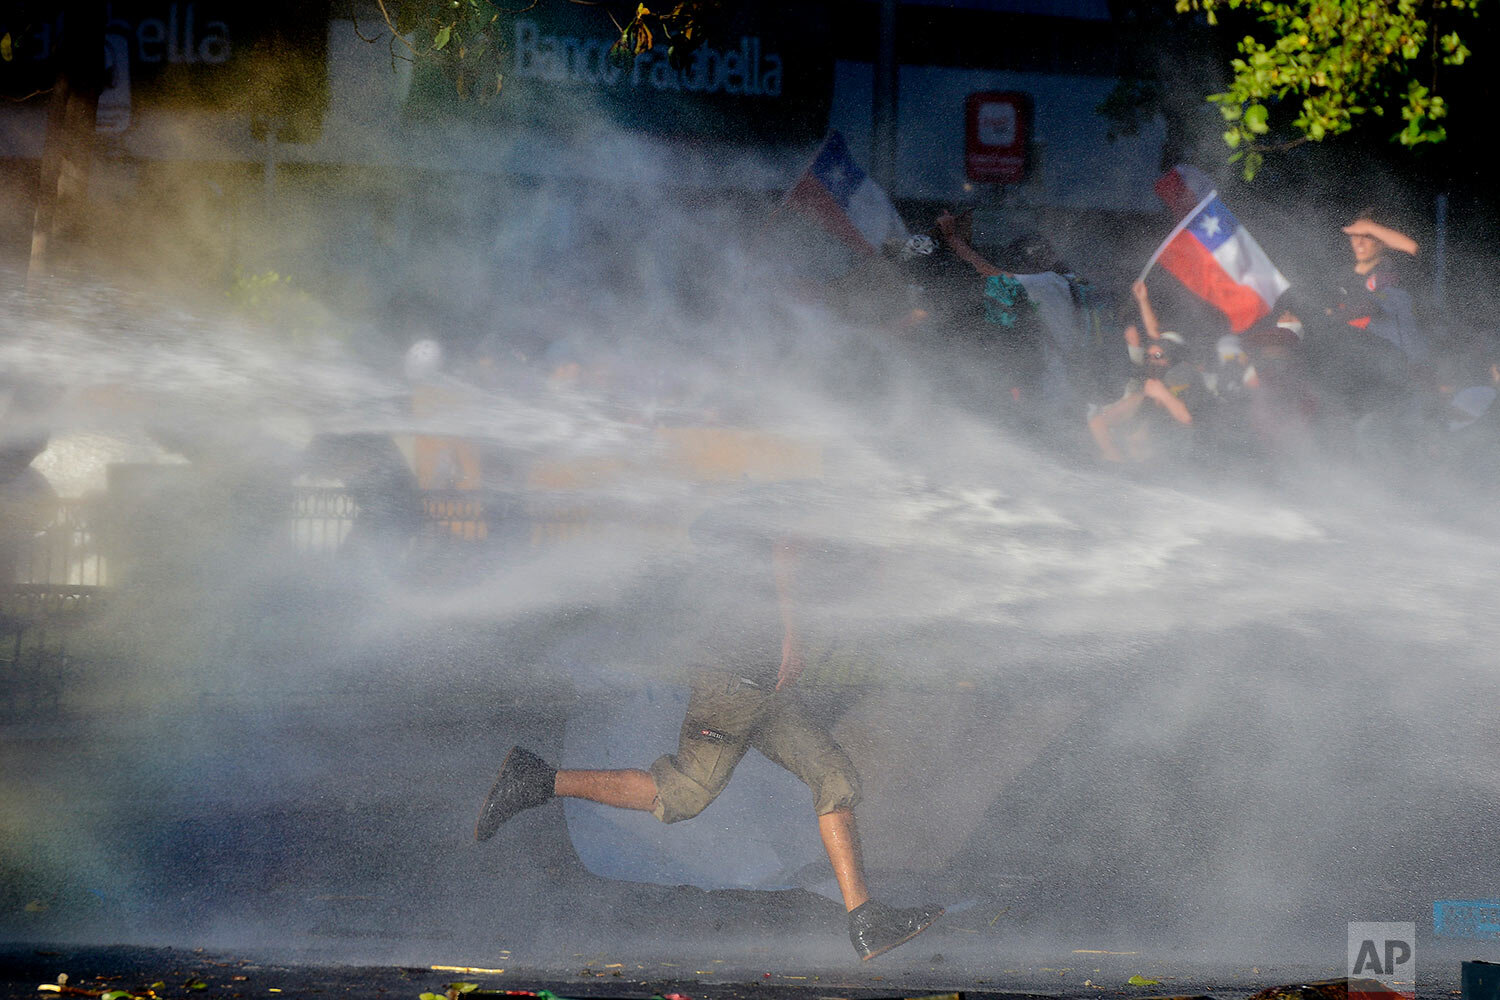 An anti-government protester runs through the spray from a police water cannon in Santiago, Chile, Monday, Oct. 28, 2019. Fresh protests and attacks on businesses erupted in Chile Monday despite President Sebastián Piñera's replacement of eight important Cabinet ministers with more centrist figures, and his attempts to assure the country that he had heard calls for greater equality and improved social services. (AP Photo/Matias Delacroix)